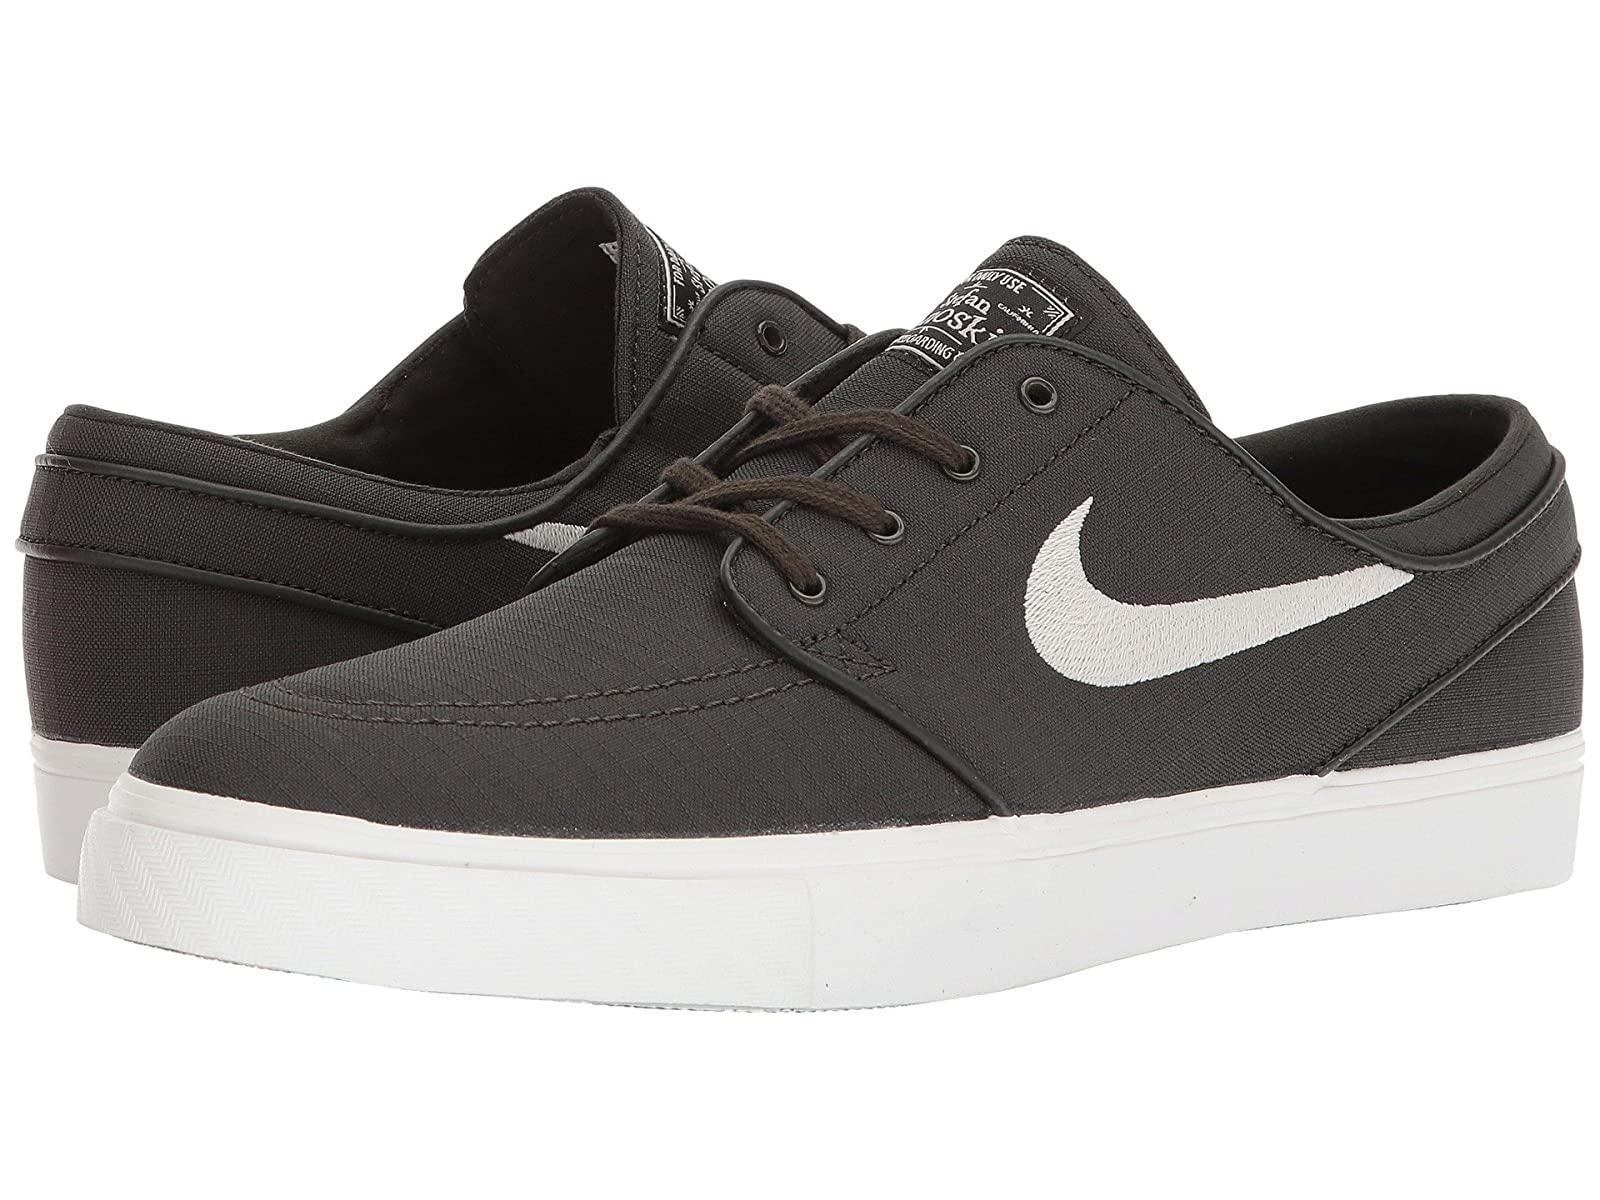 Nike SB Zoom Stefan Janoski CanvasCheap and distinctive eye-catching shoes